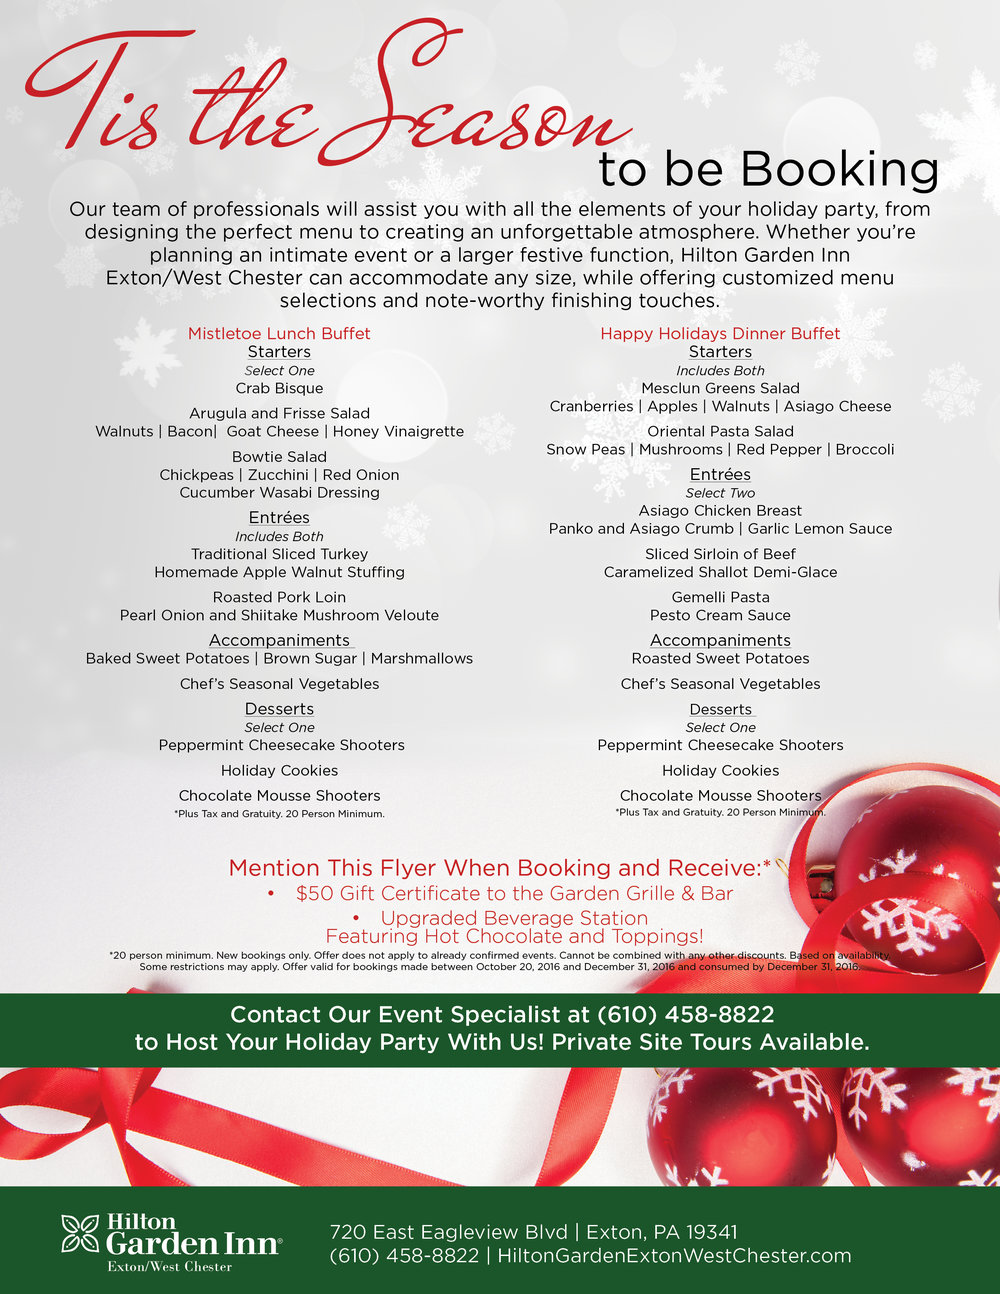 Holiday-Parties-with-Hilton-Garden-Inn-Exton-WestChester.jpg